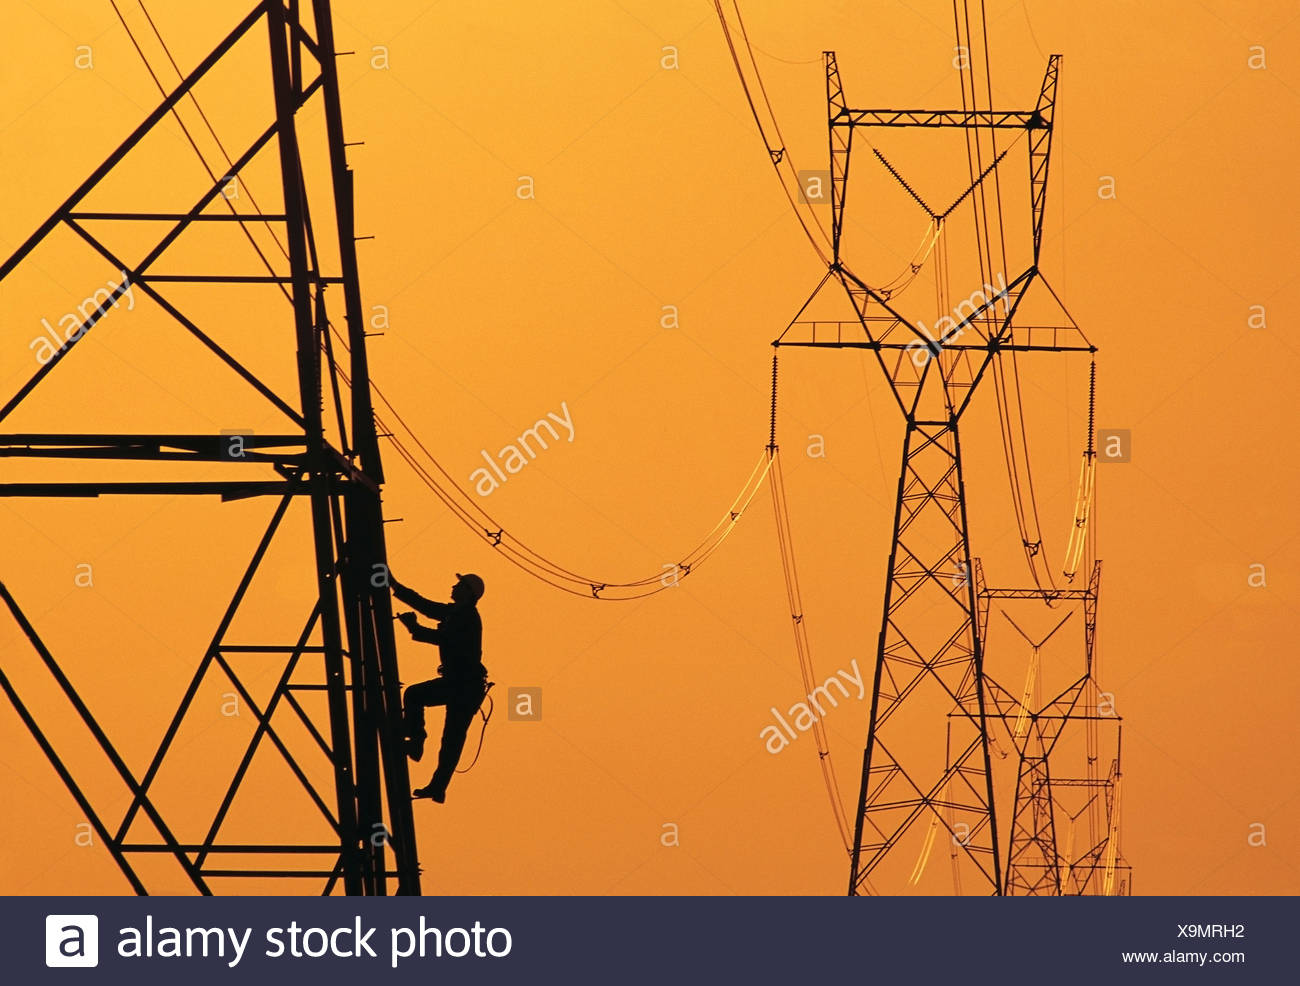 hight resolution of a worker climbs an electrical tower manitoba canada stock image